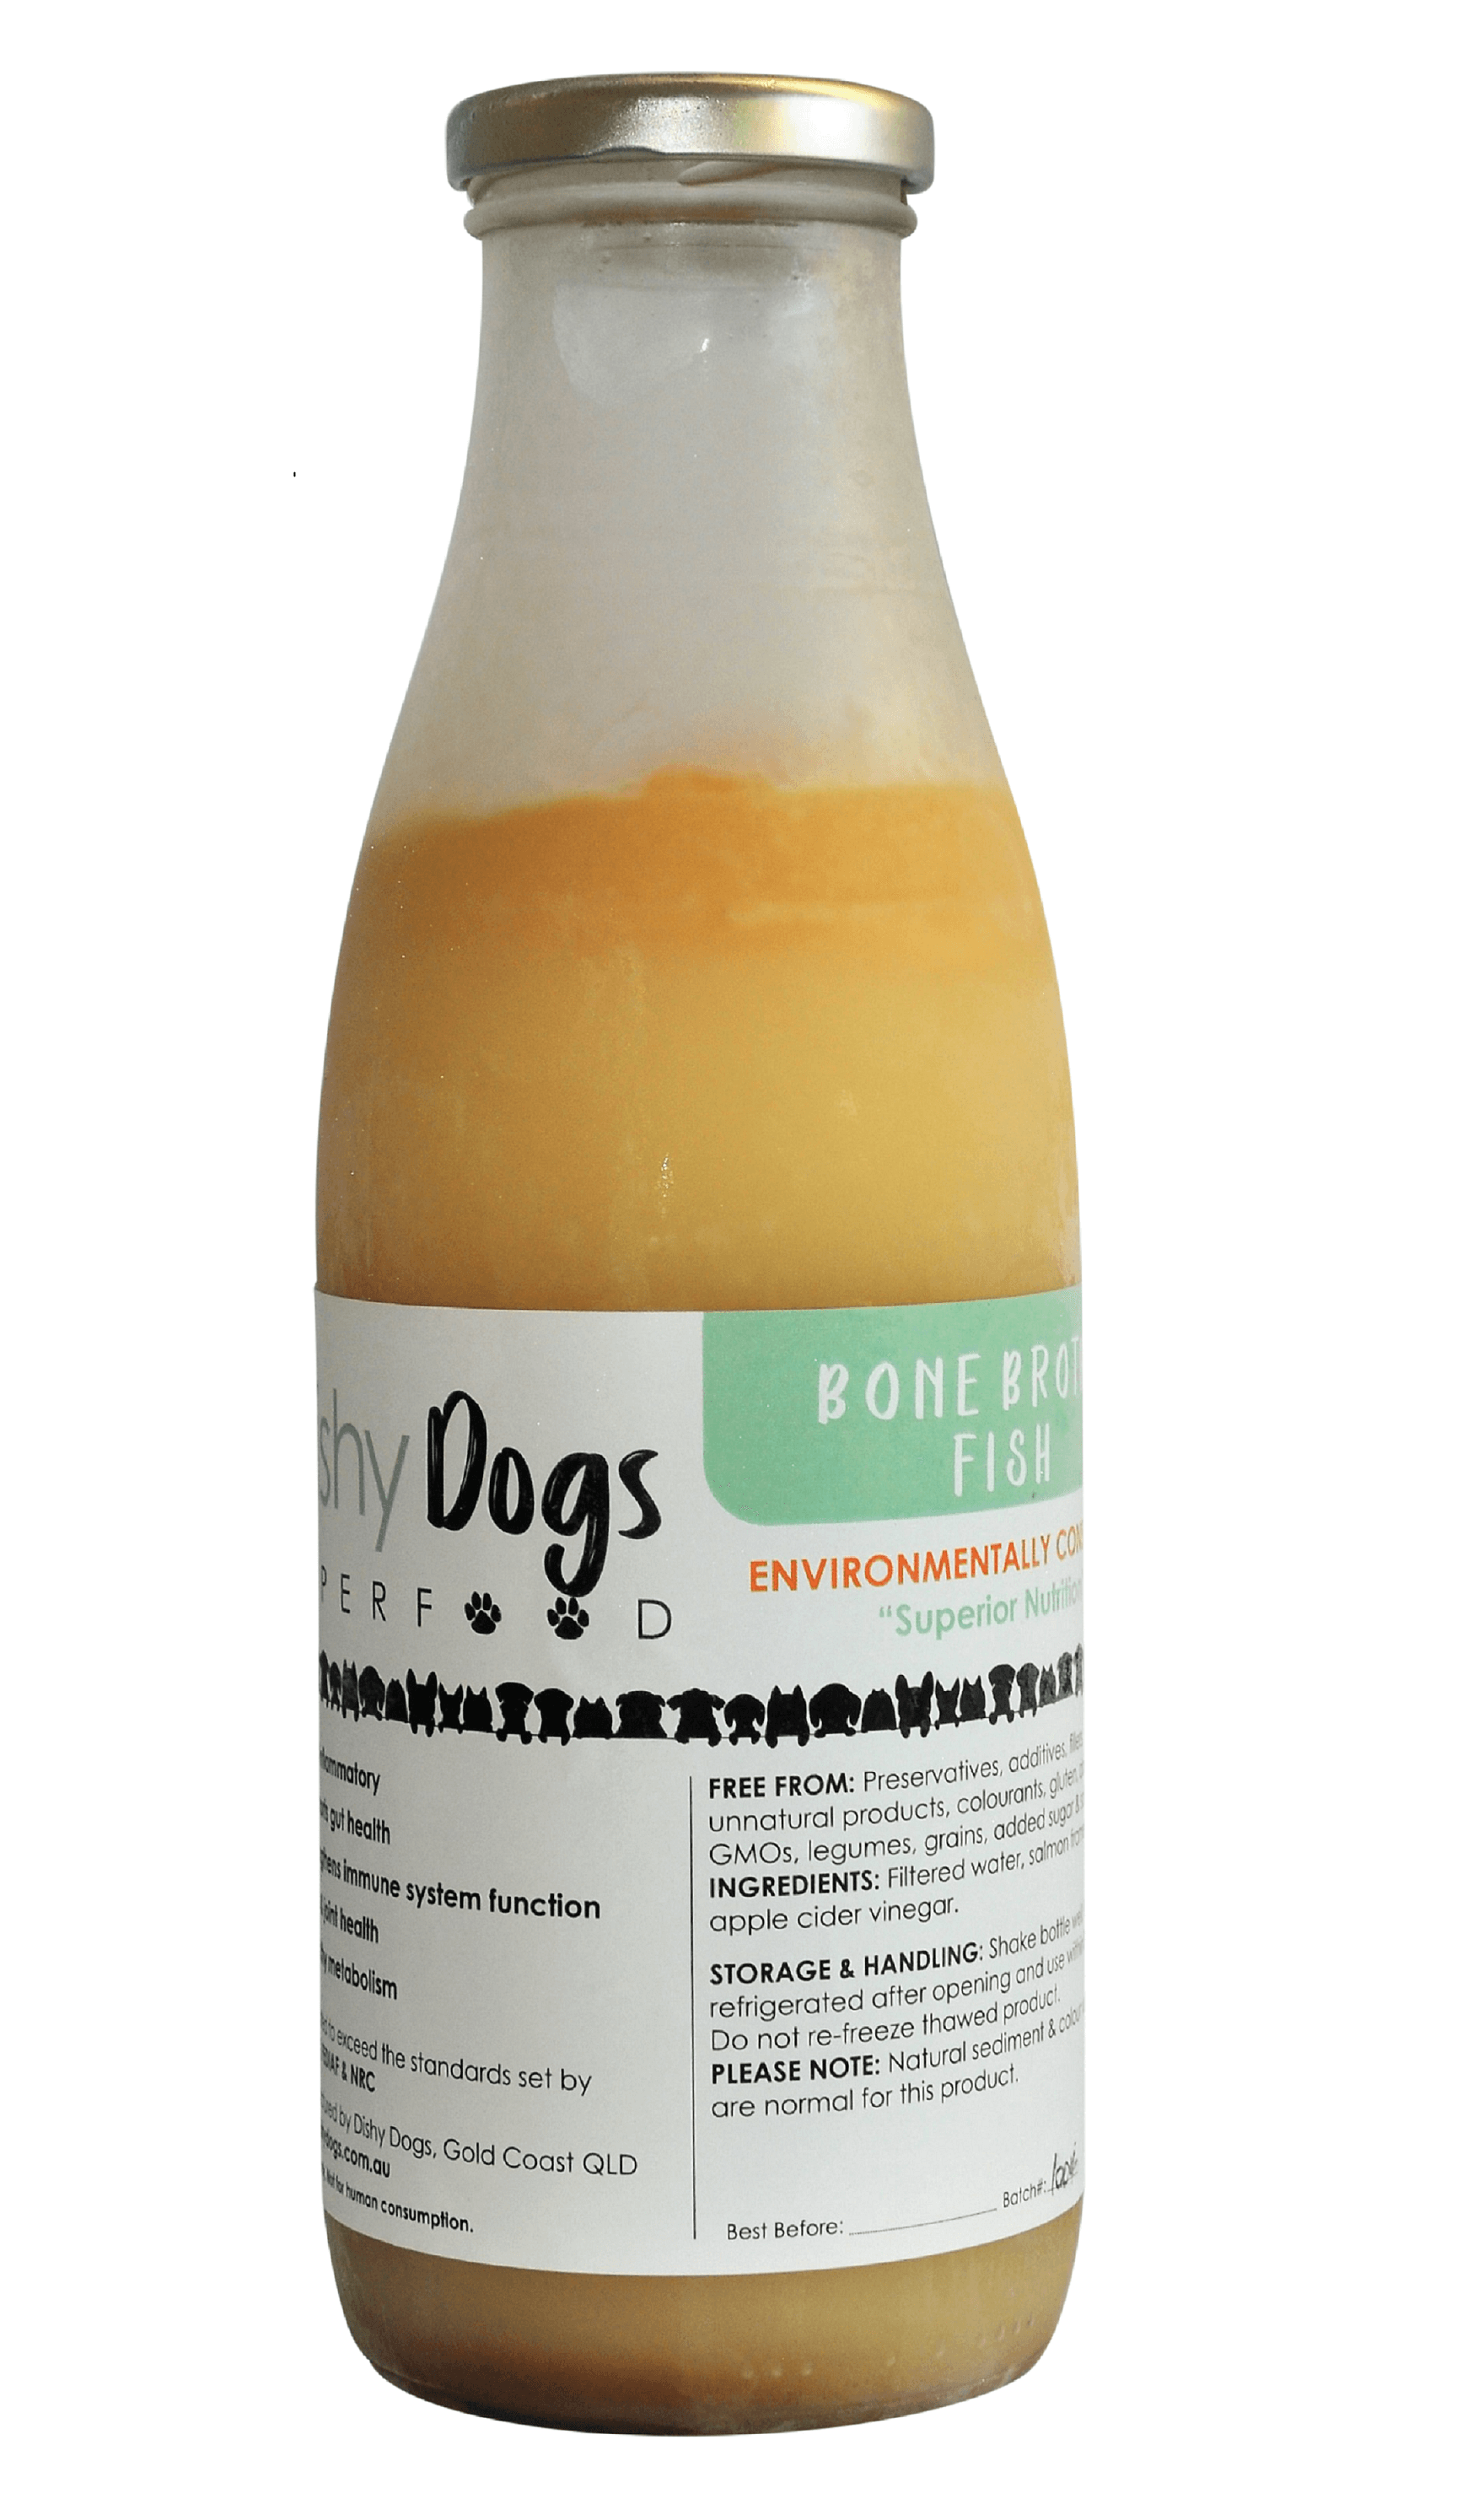 Dishy Dogs Bone Broth Nutrition